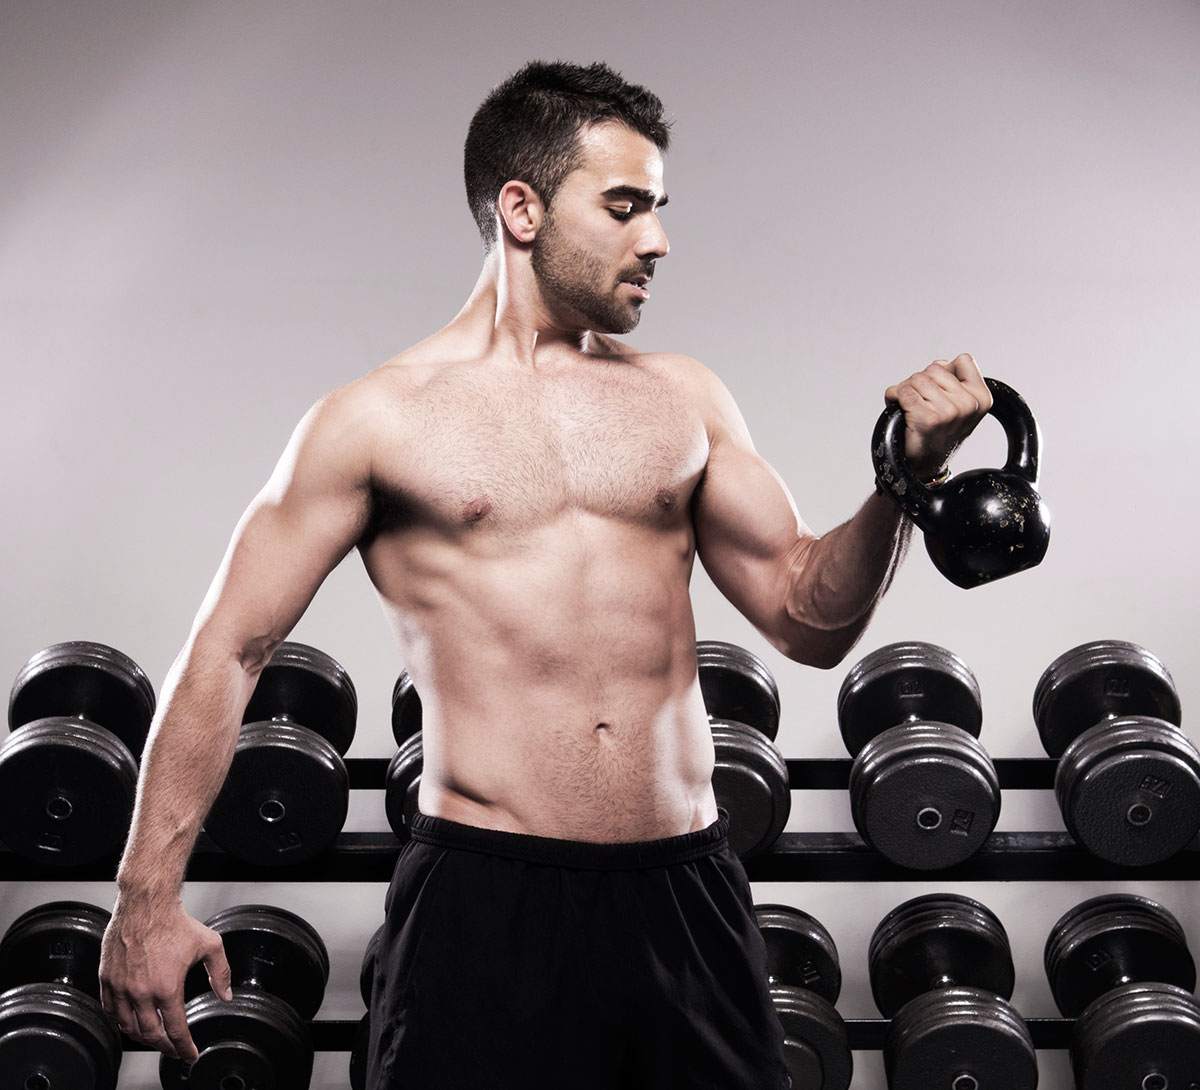 West Coast Fitness instructor demonstrates arm curls with a kettle bell | Commercial Photography